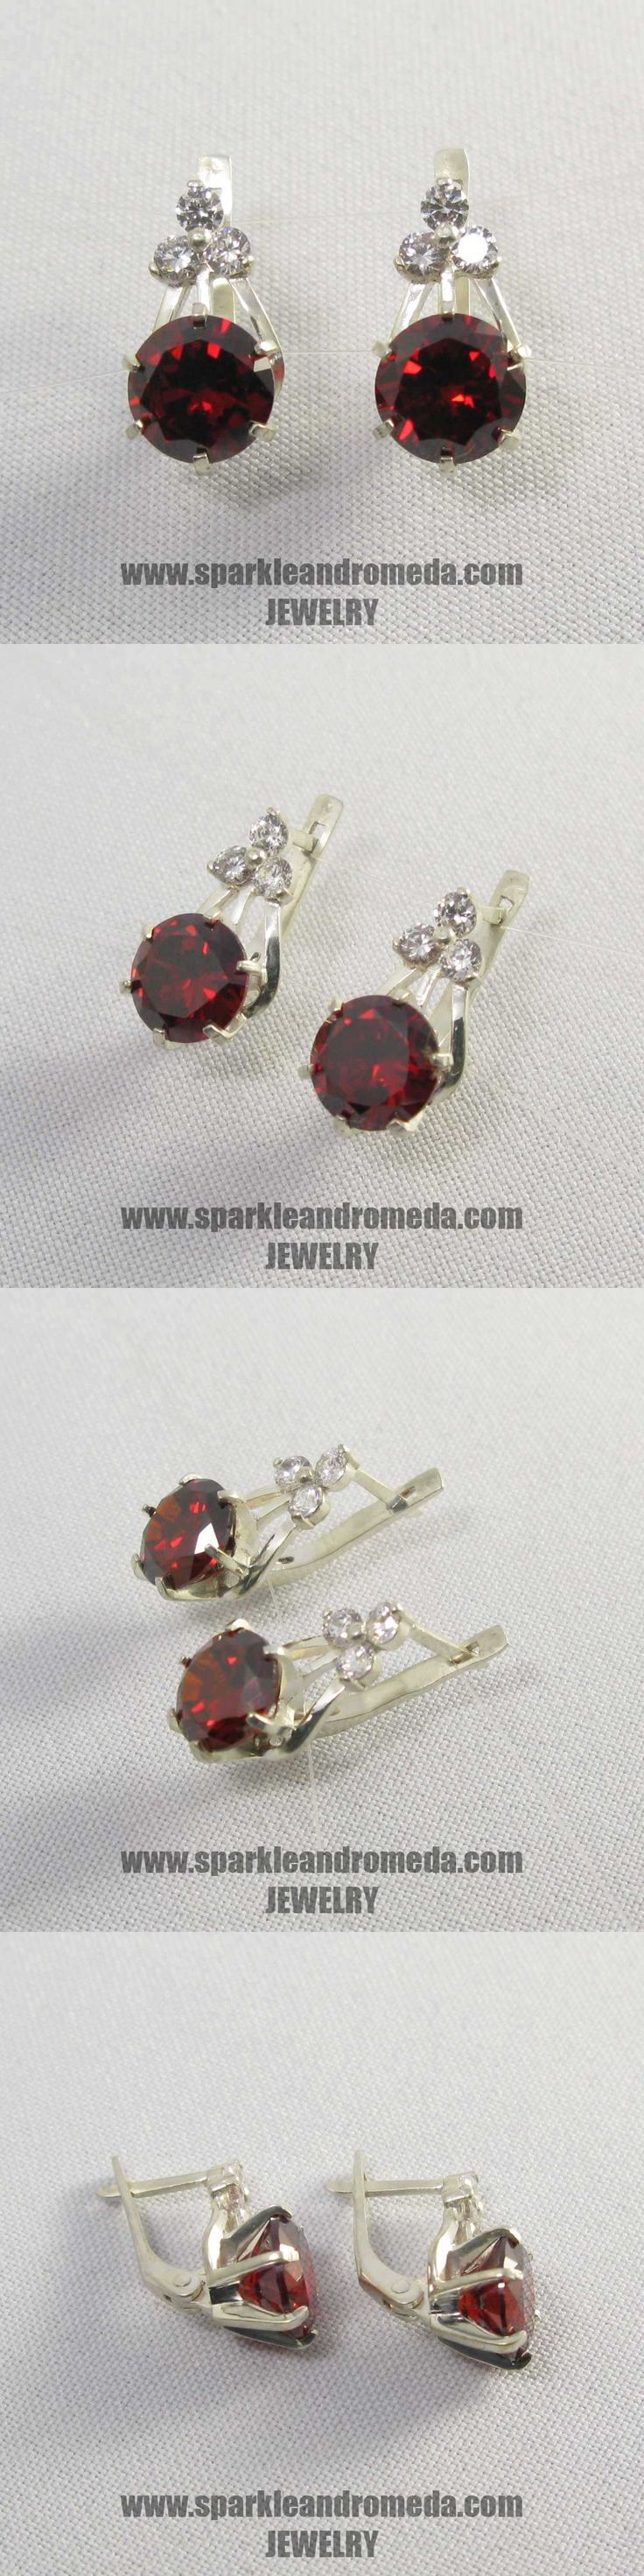 Sterling 925 silver earrings with 2 round 9 mm red almandine color and 6 round 3 mm white color cubic zirconia gemstones.